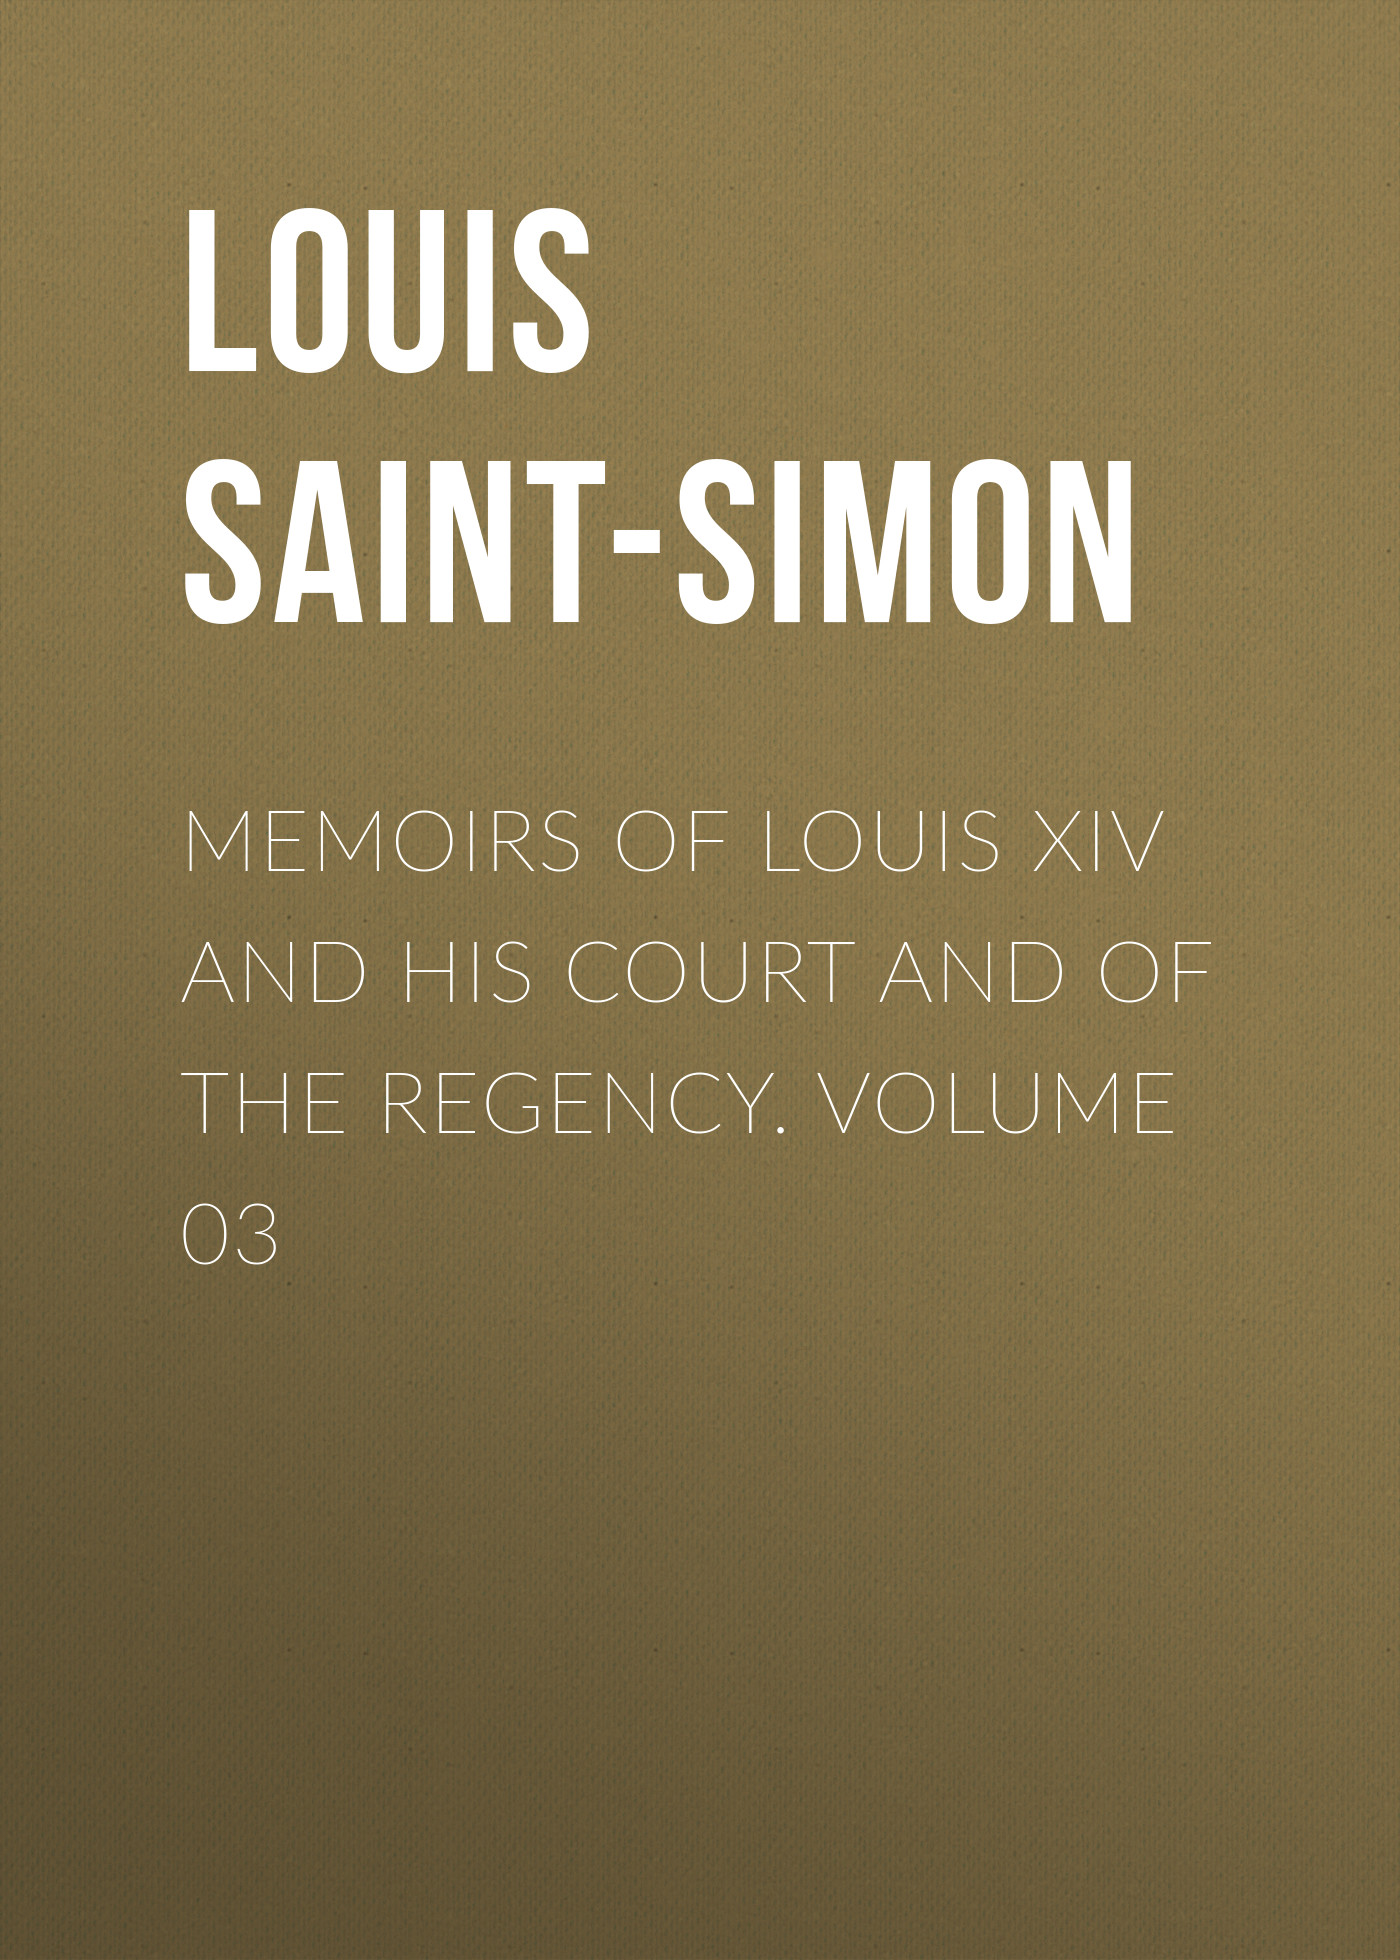 Фото - Louis Saint-Simon Memoirs of Louis XIV and His Court and of the Regency. Volume 03 jules marcou life letters and works of louis agassiz volume i